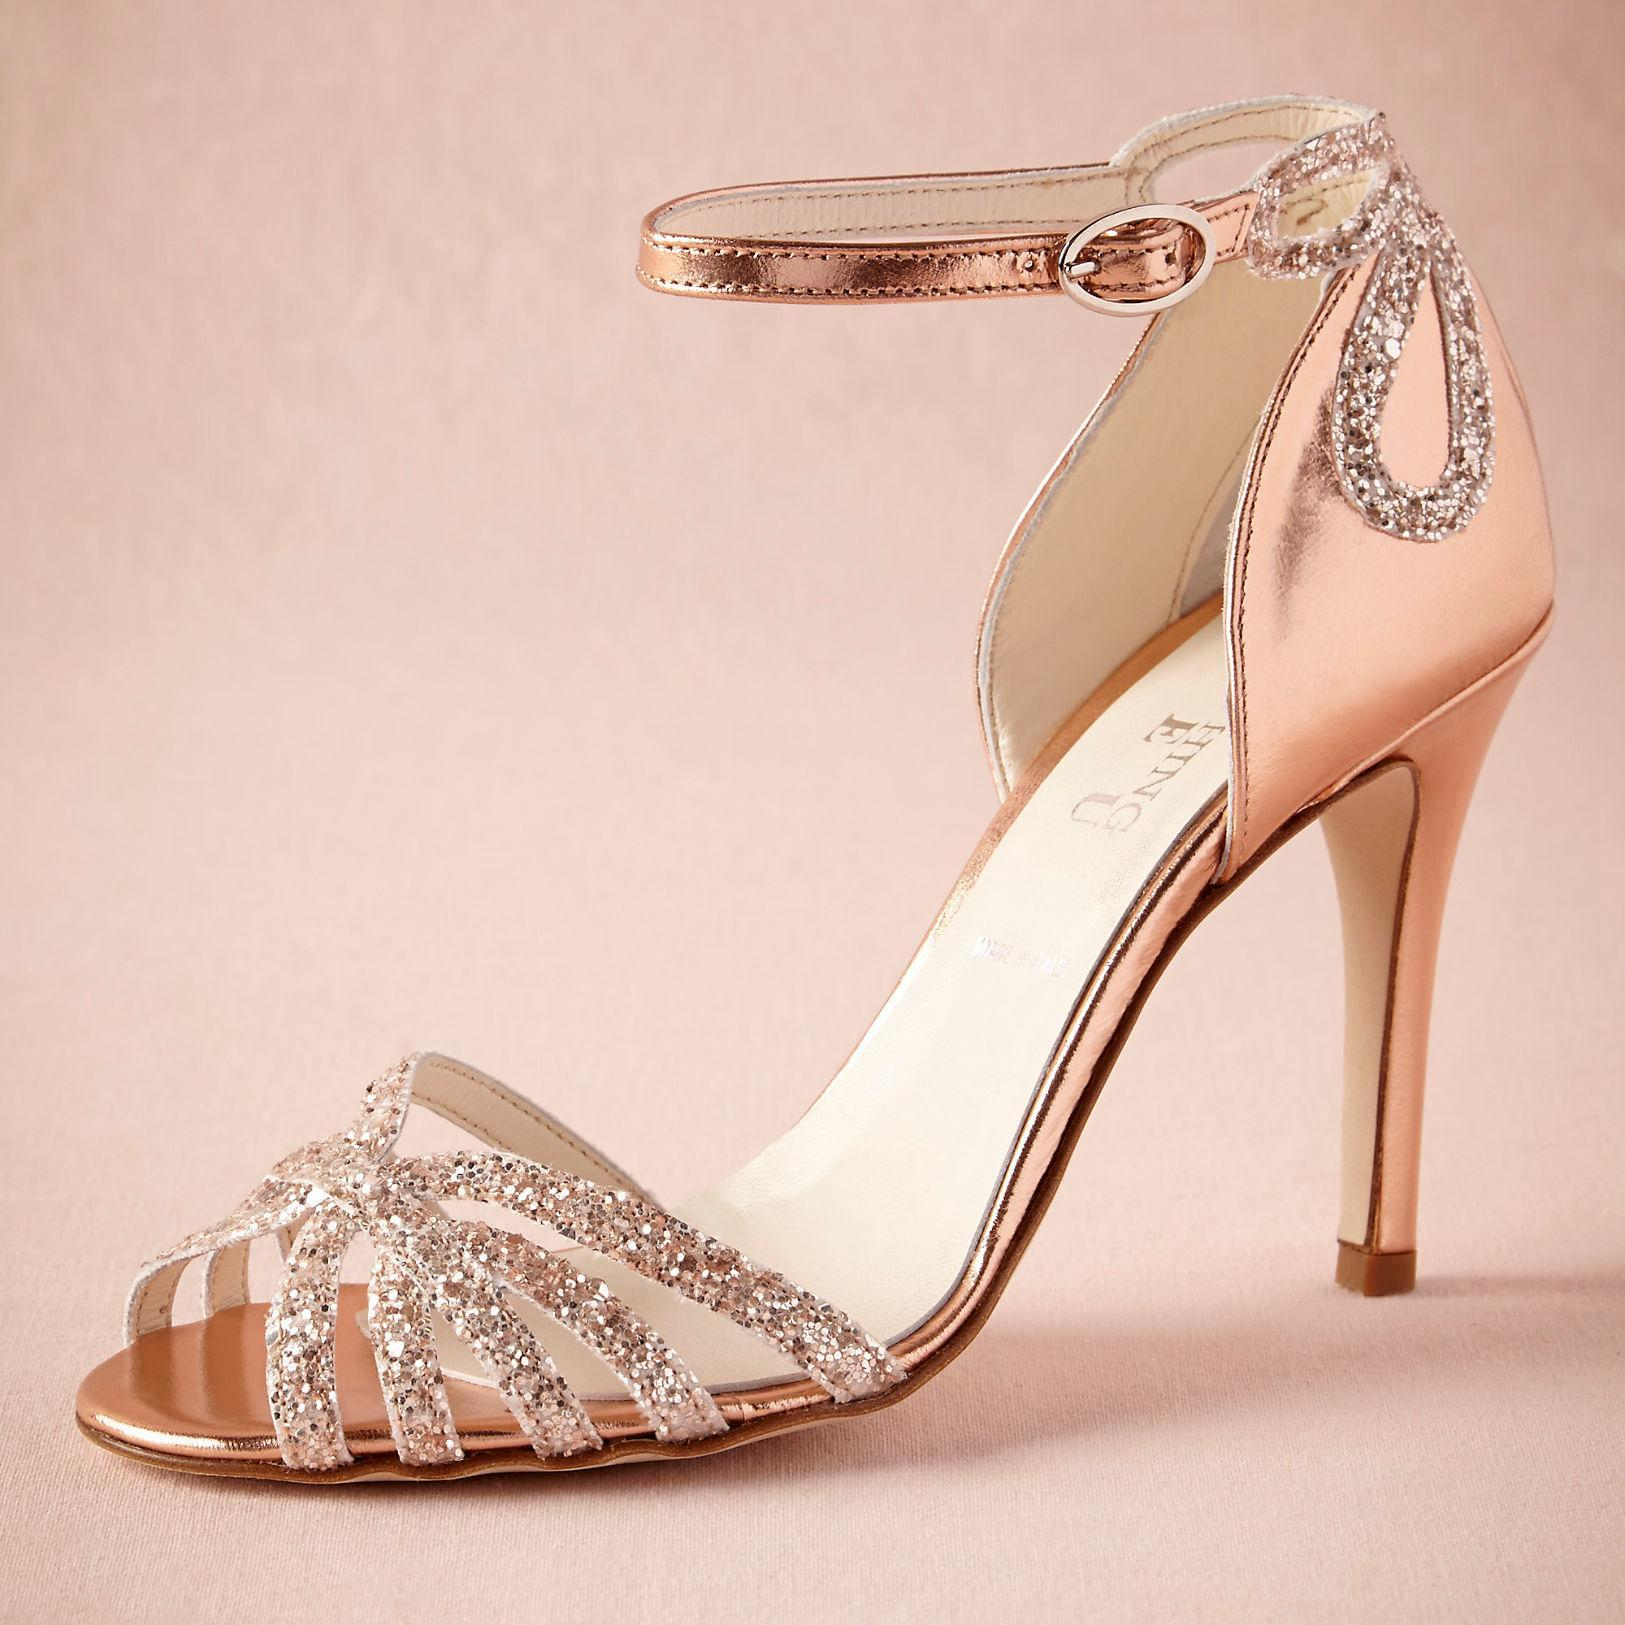 7c972e7a0e07e3 Rose Gold Glittered Heel Real Wedding Shoes Pumps Sandals Gold Leather  Buckle Closure Glitter Party Dance High Wrapped Heels Women Sandals Shoes  For Womens ...